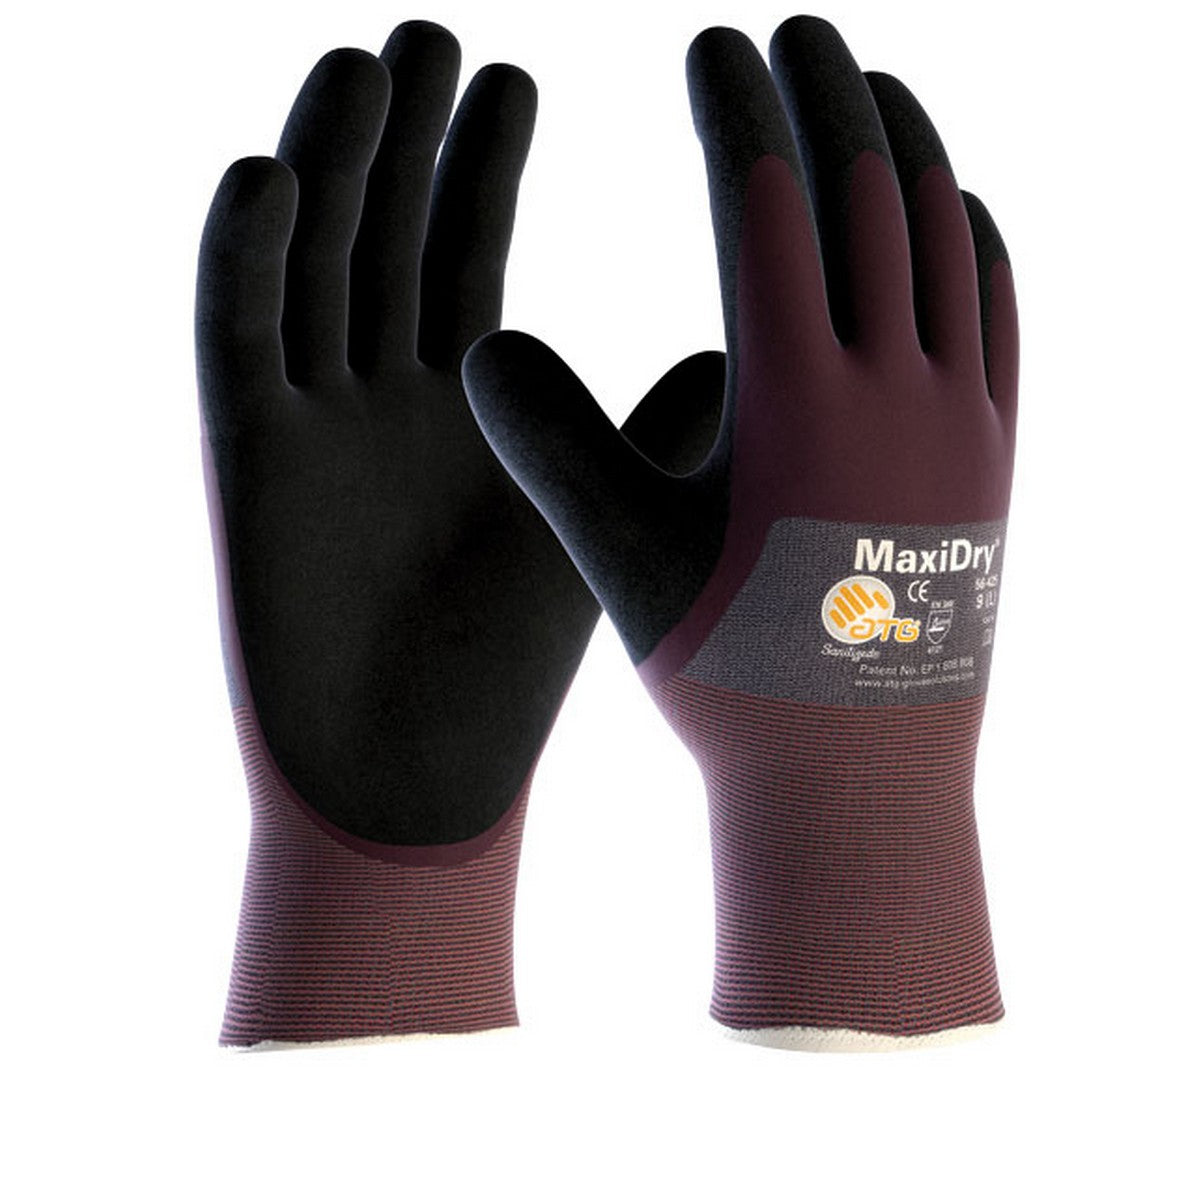 Image of Armour MaxiDry 1/2 Coat Glove